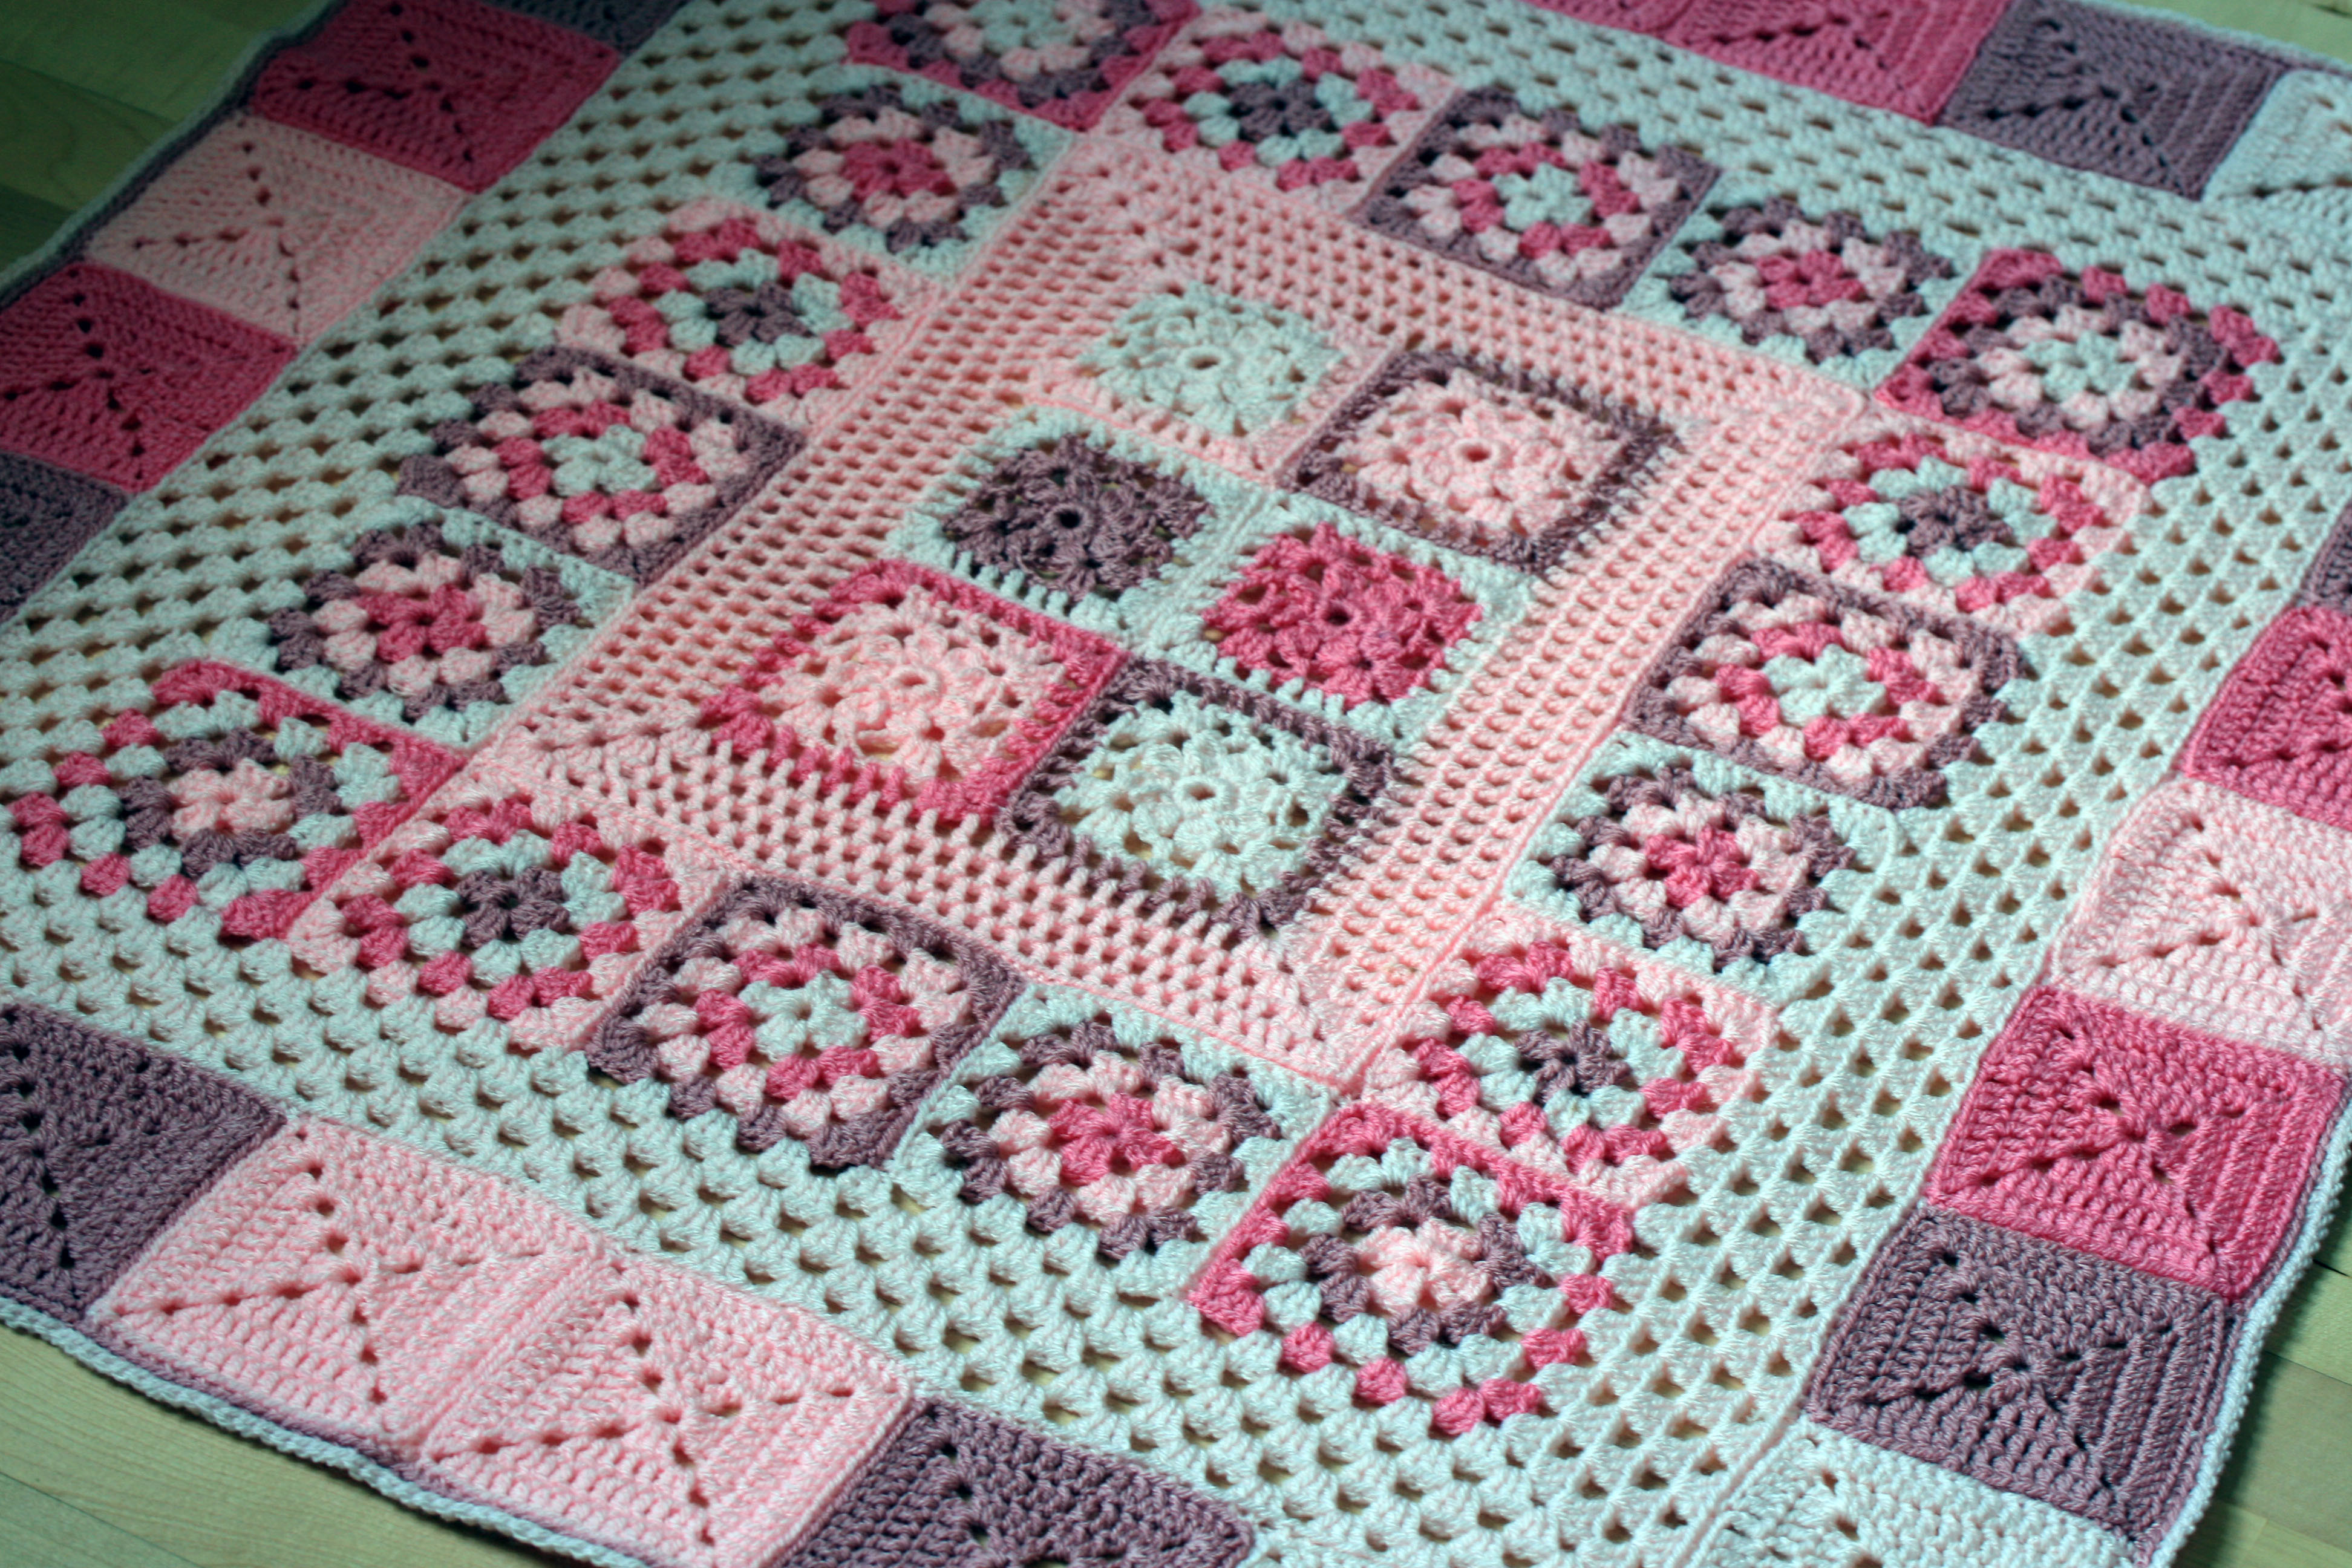 Awesome 301 Moved Permanently Pretty Crochet Stitches Of Incredible 48 Pics Pretty Crochet Stitches